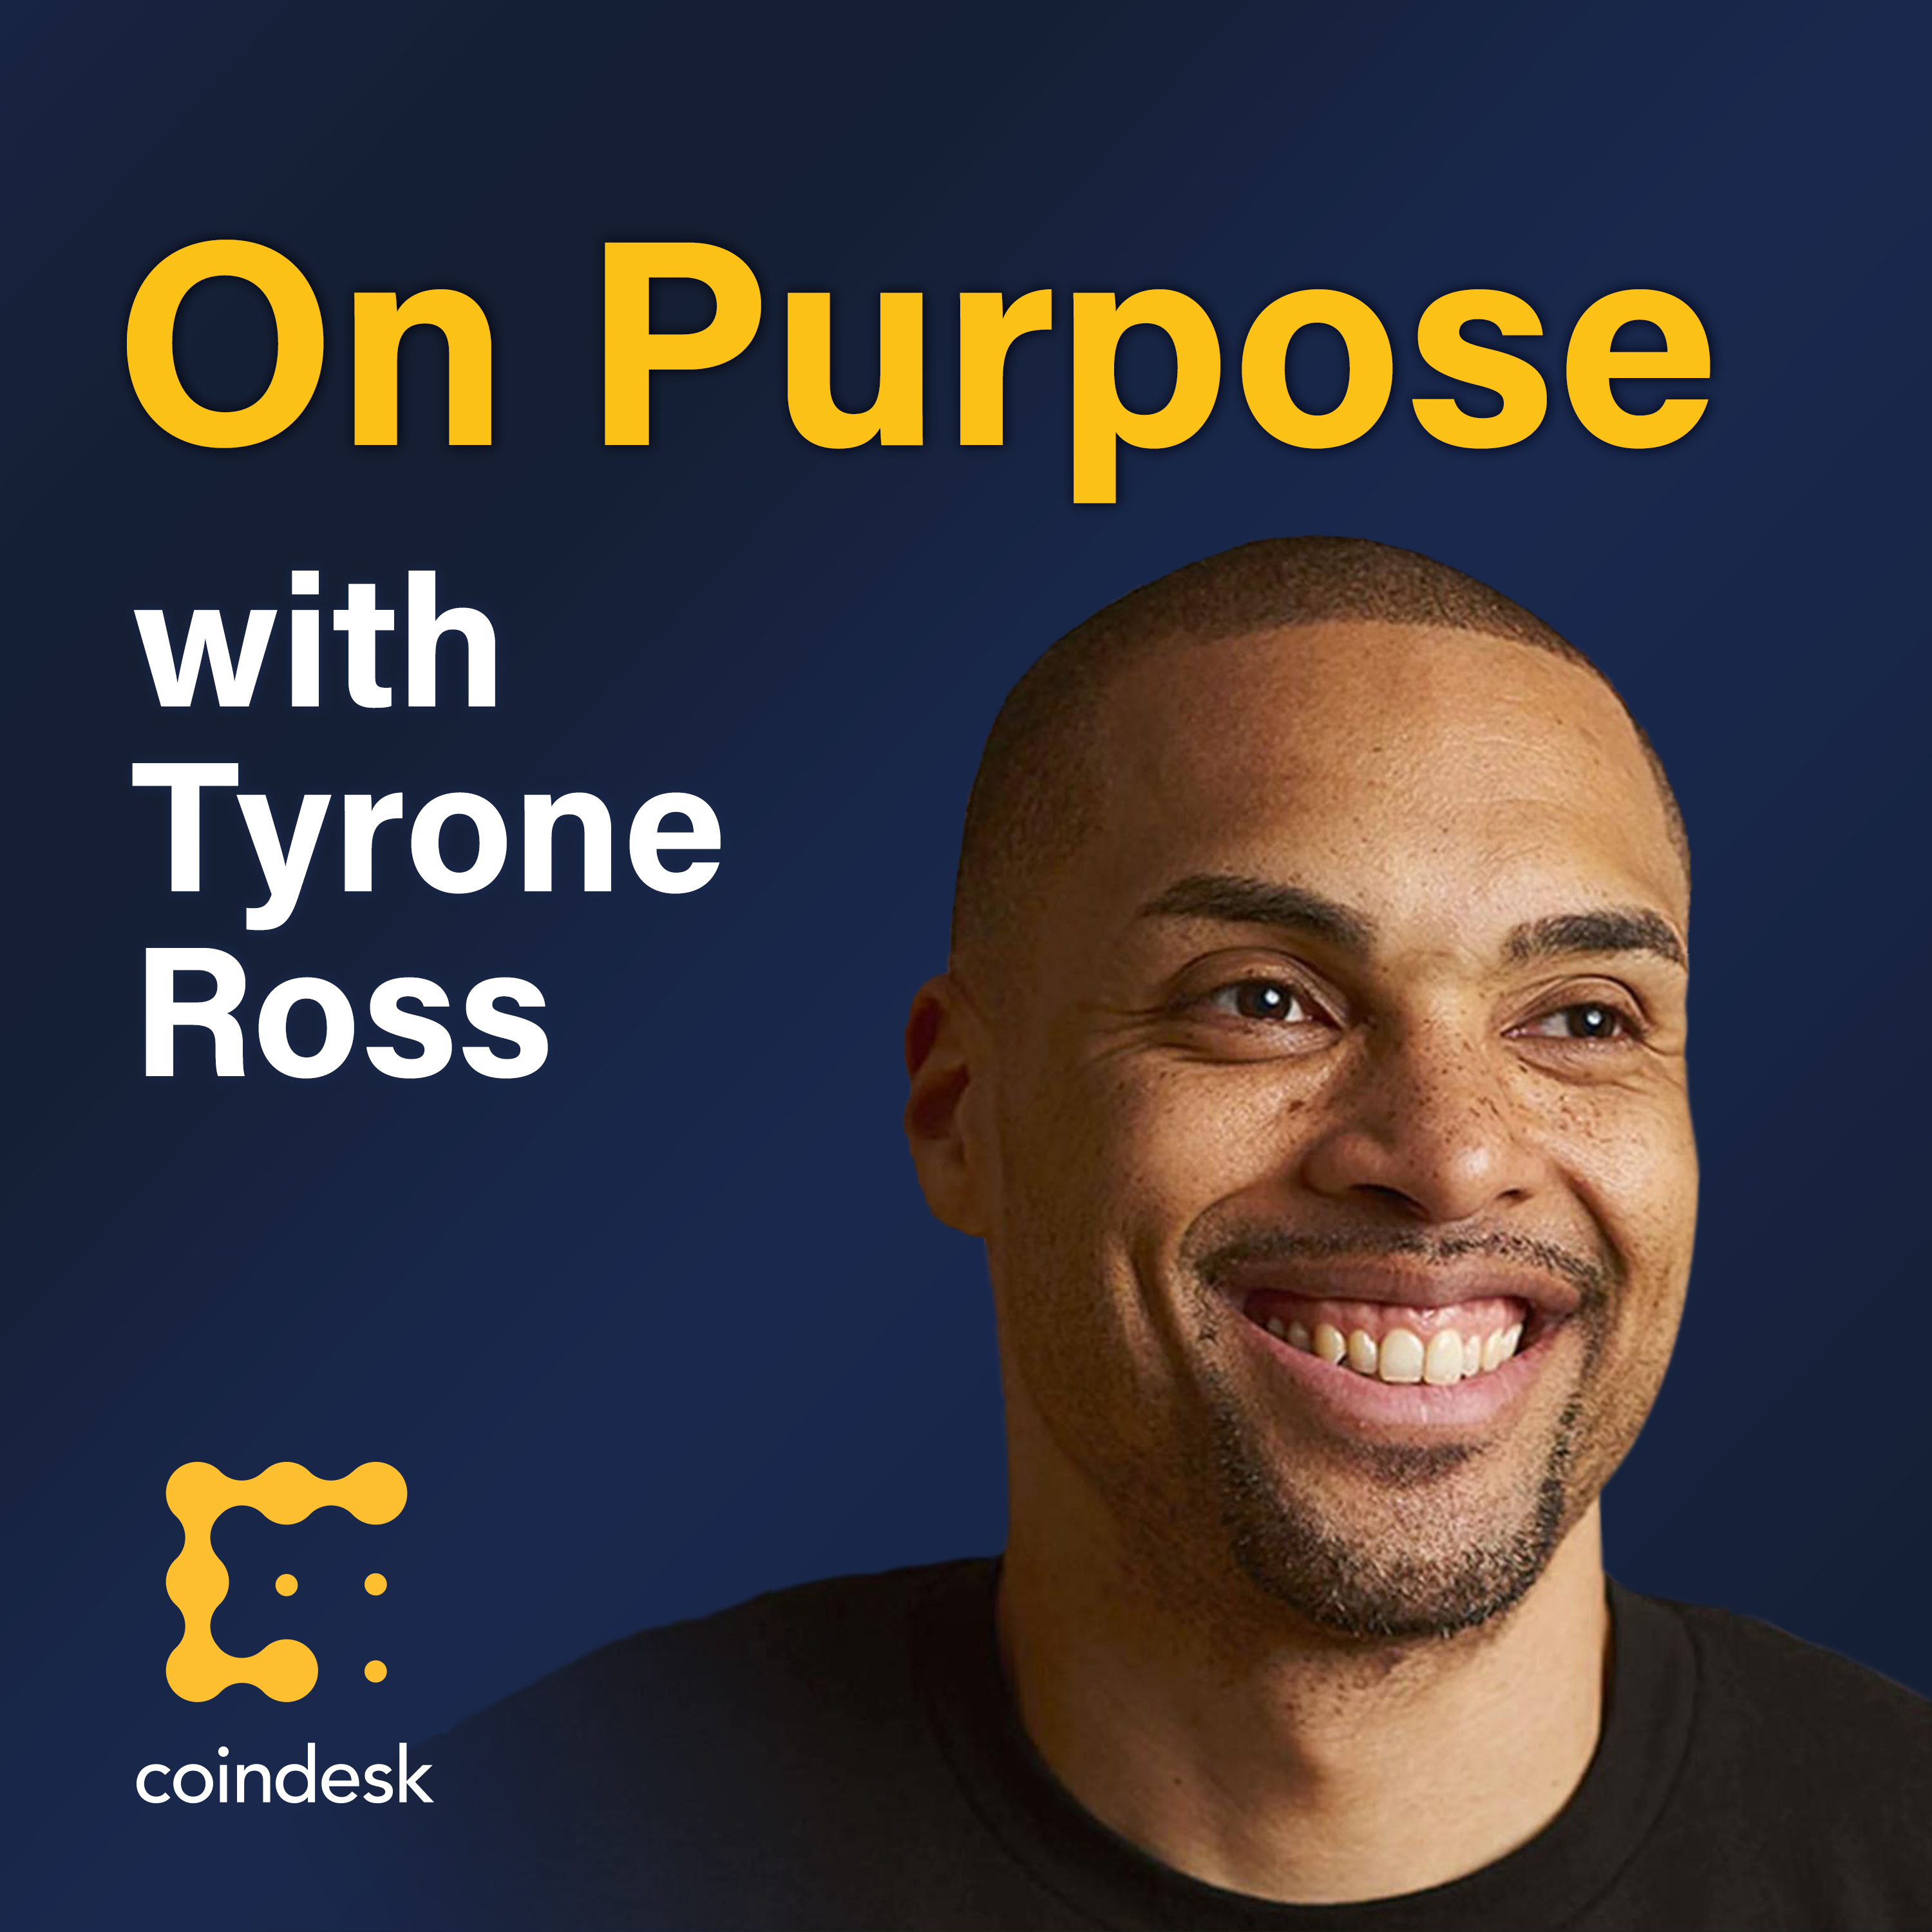 ON PURPOSE: How Financial Advisers Should Think About Bitcoin with Morgen Rochard